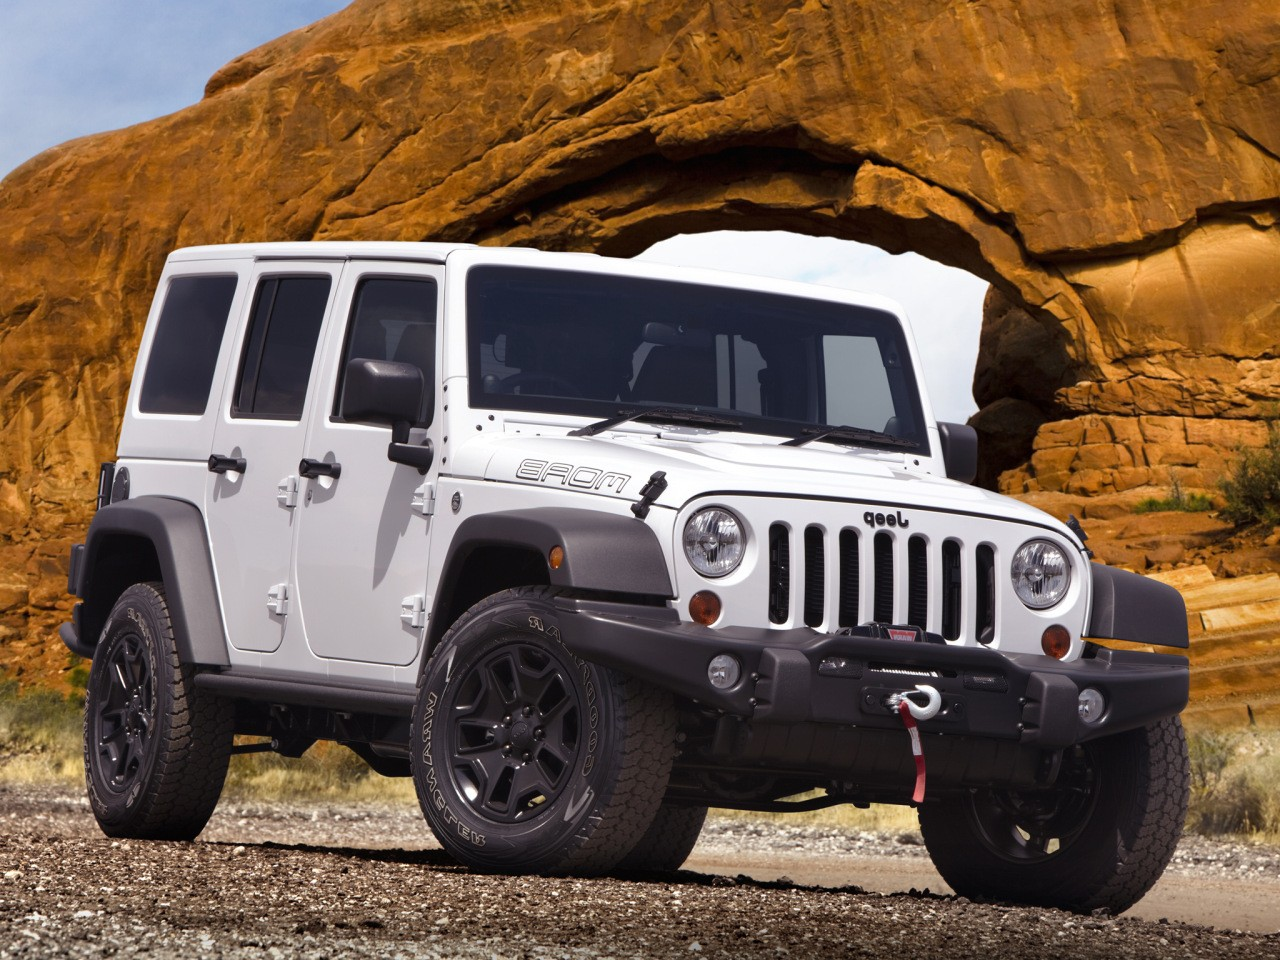 jeep rubicon 2013: review, amazing pictures and images – look at